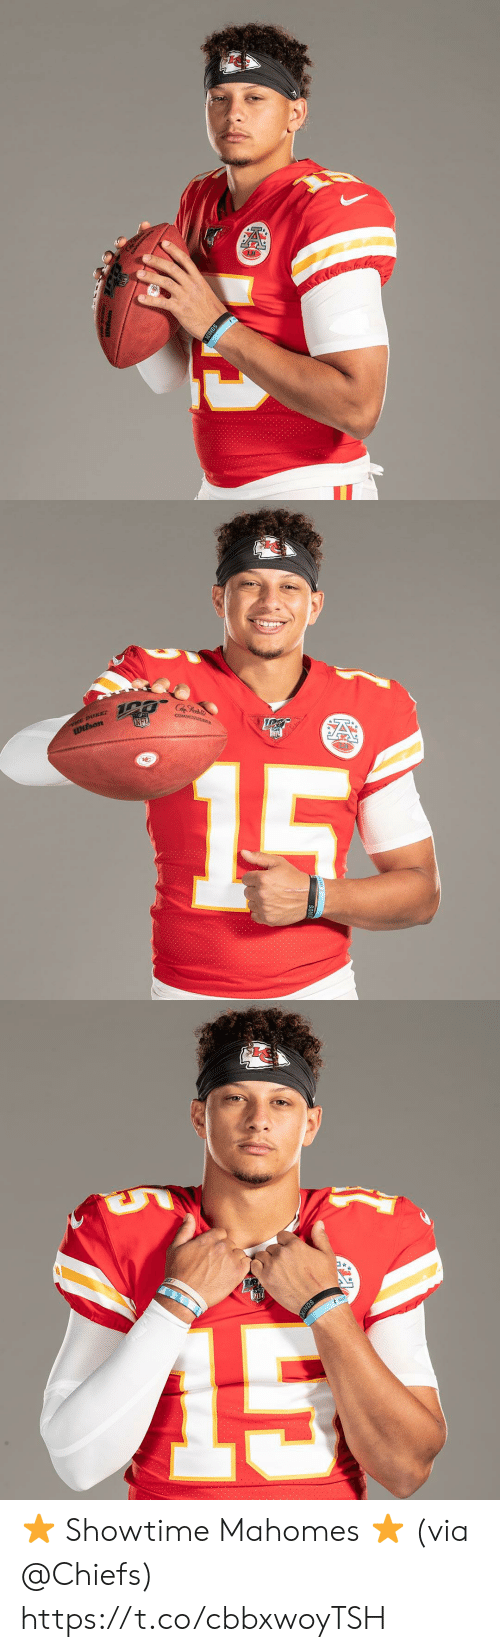 Memes, Nfl, and Chiefs: SON   rNE DURe  wilson  NFL  INOISSINNOs  15  A   SONNS ⭐️ Showtime Mahomes ⭐️  (via @Chiefs) https://t.co/cbbxwoyTSH